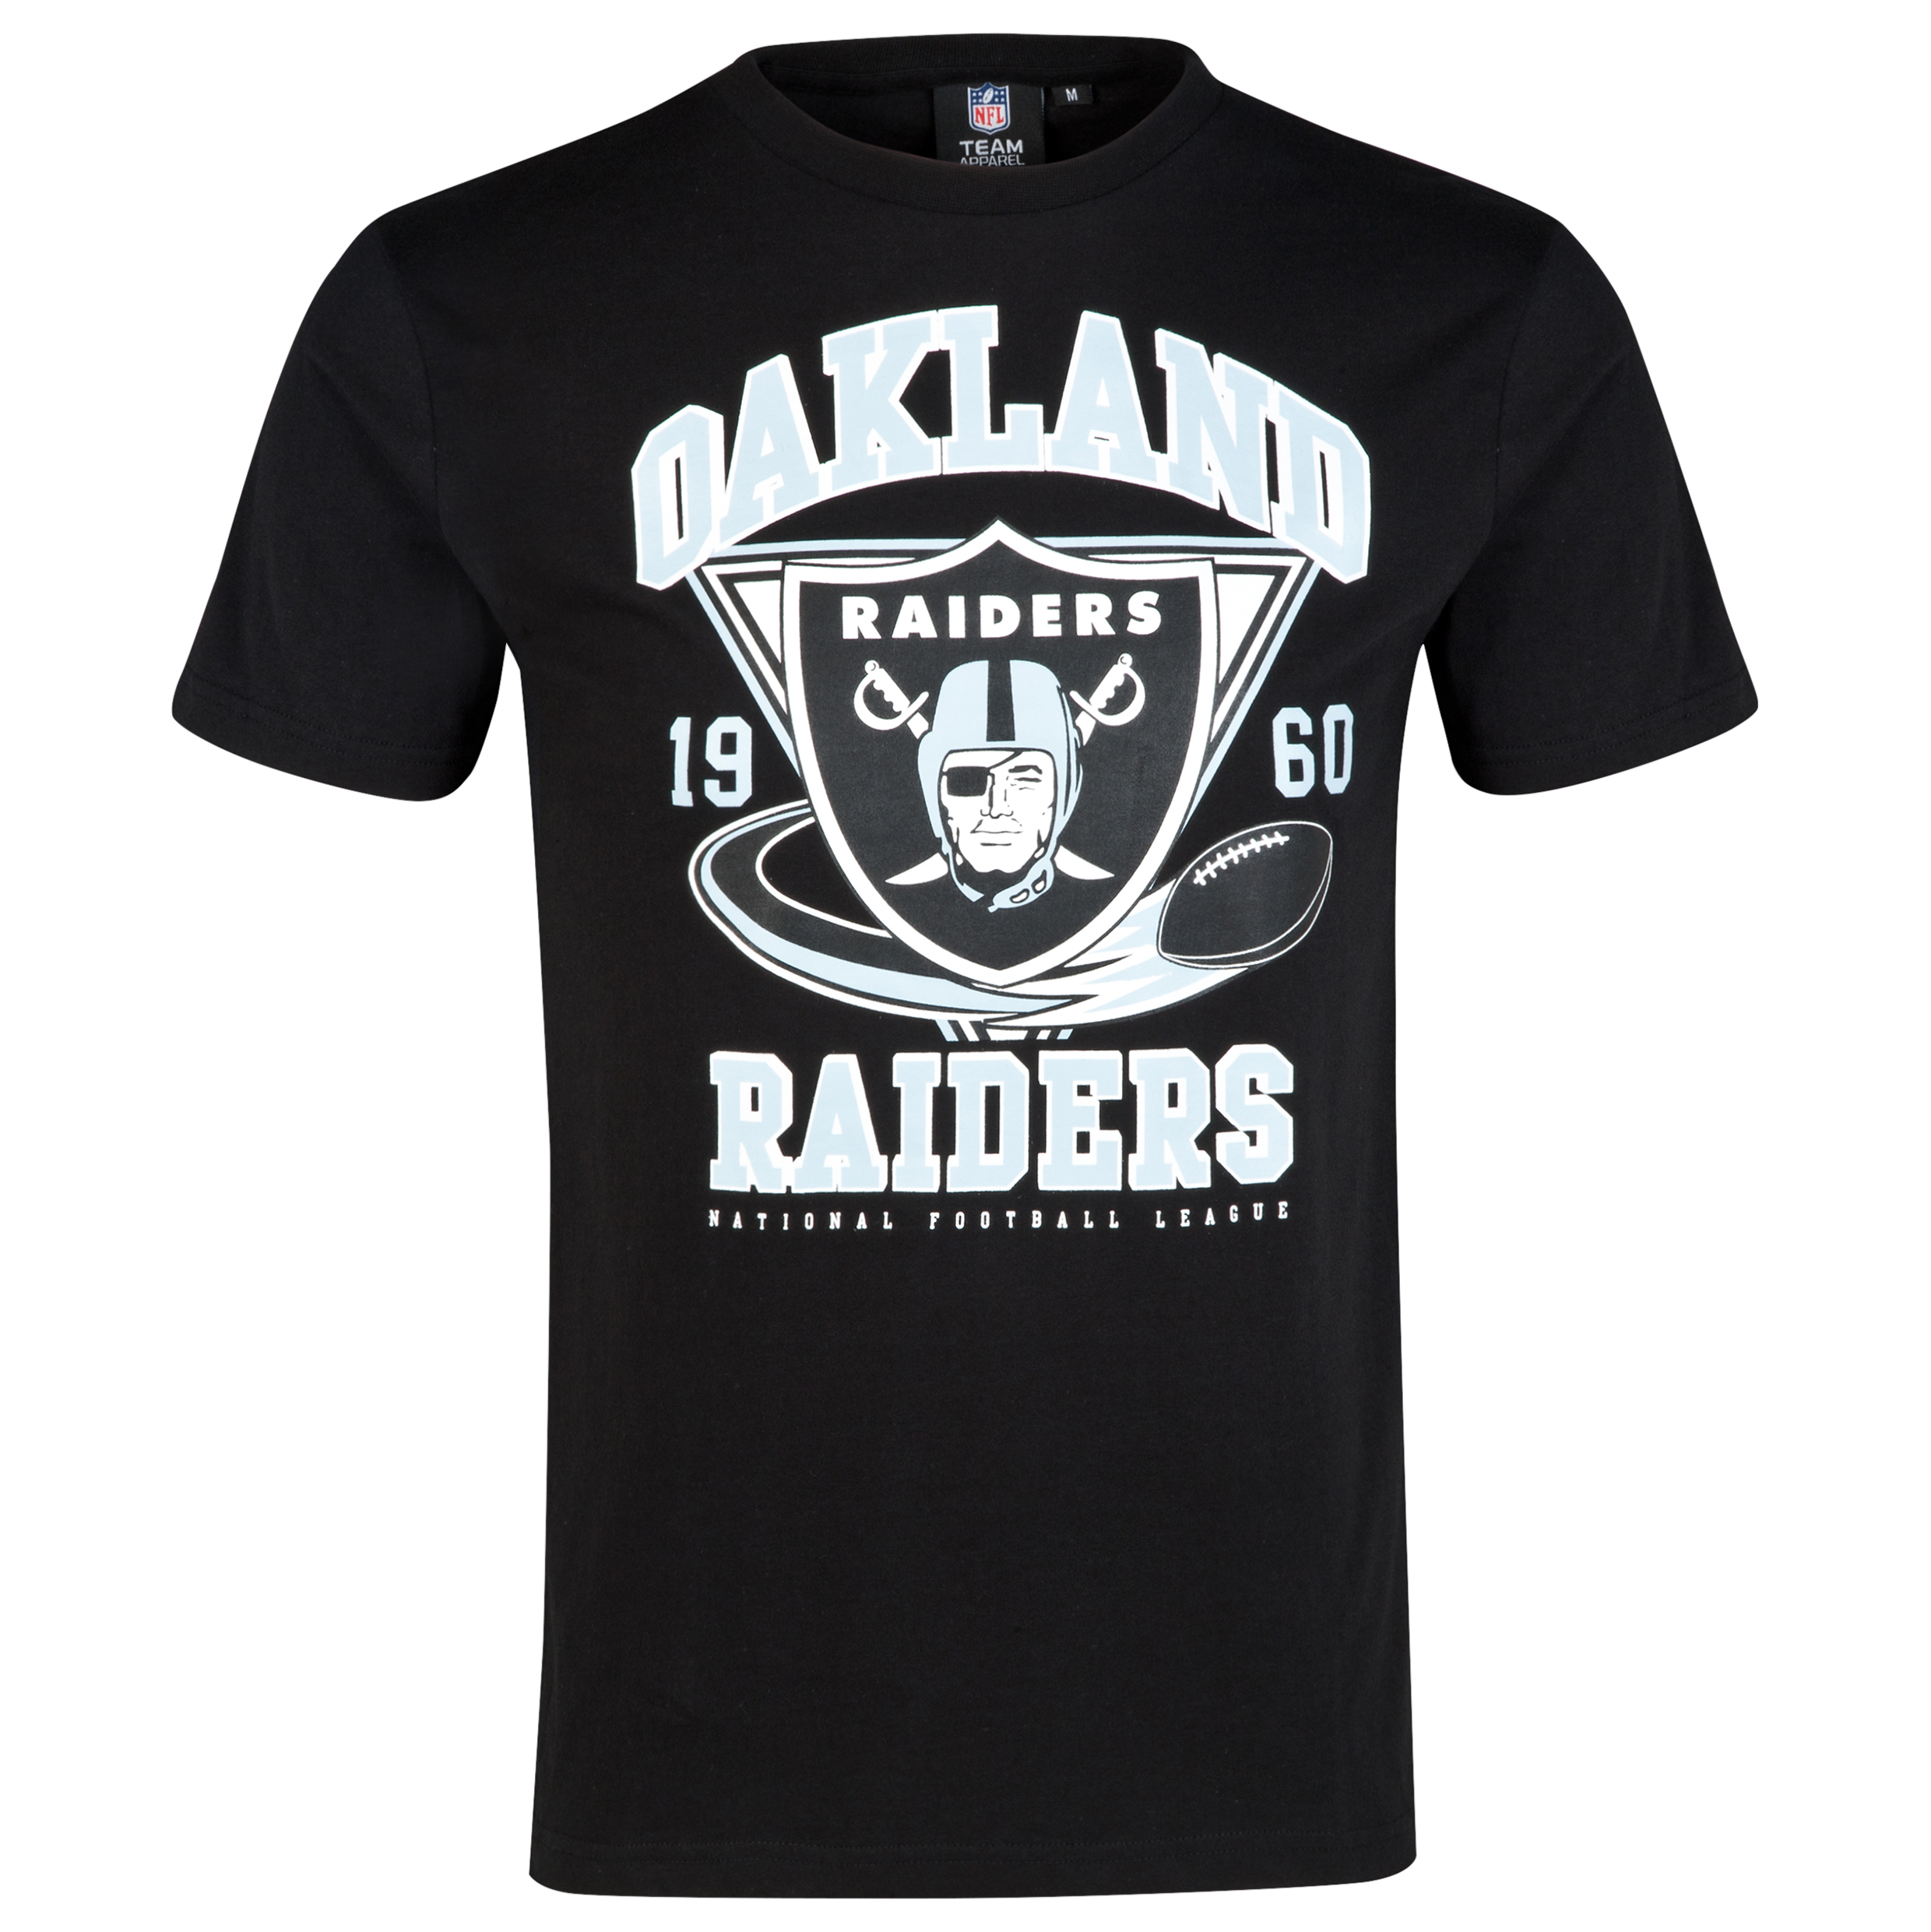 Oakland Raiders Cullen Crew T-Shirt